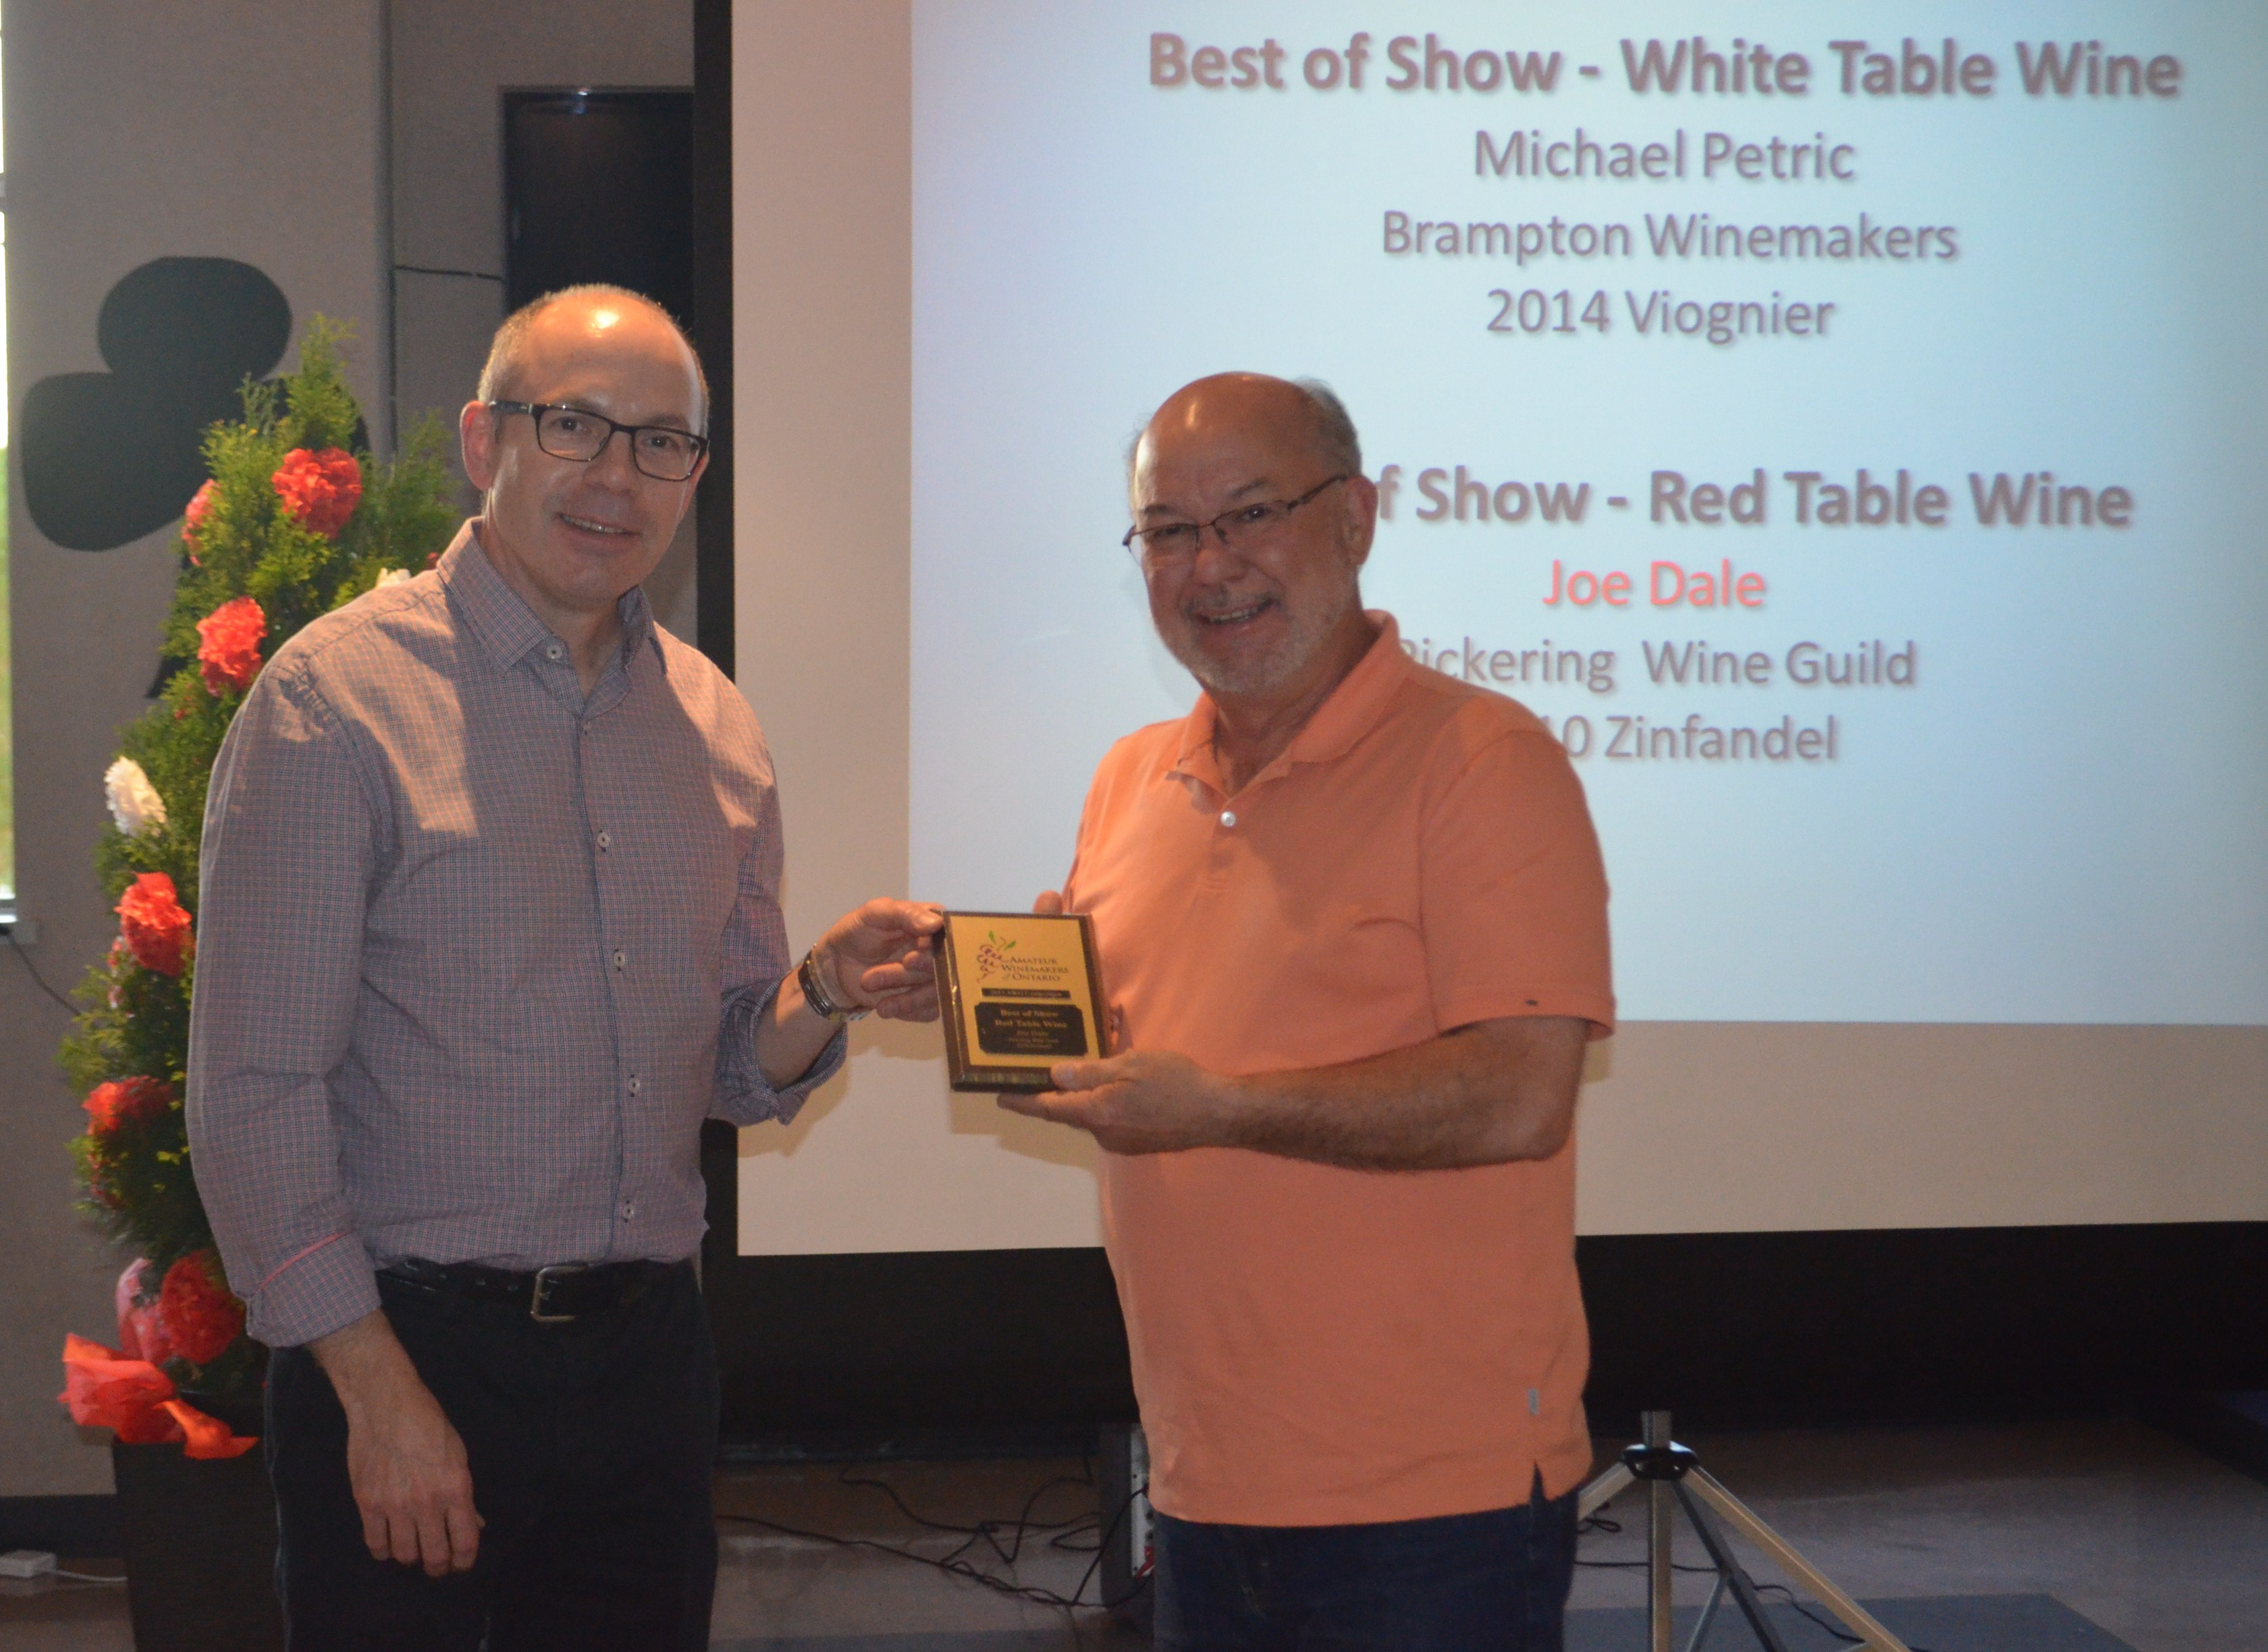 2015-06-06 BEST OF SHOW RED TABLE WINE JOE DALE 2015